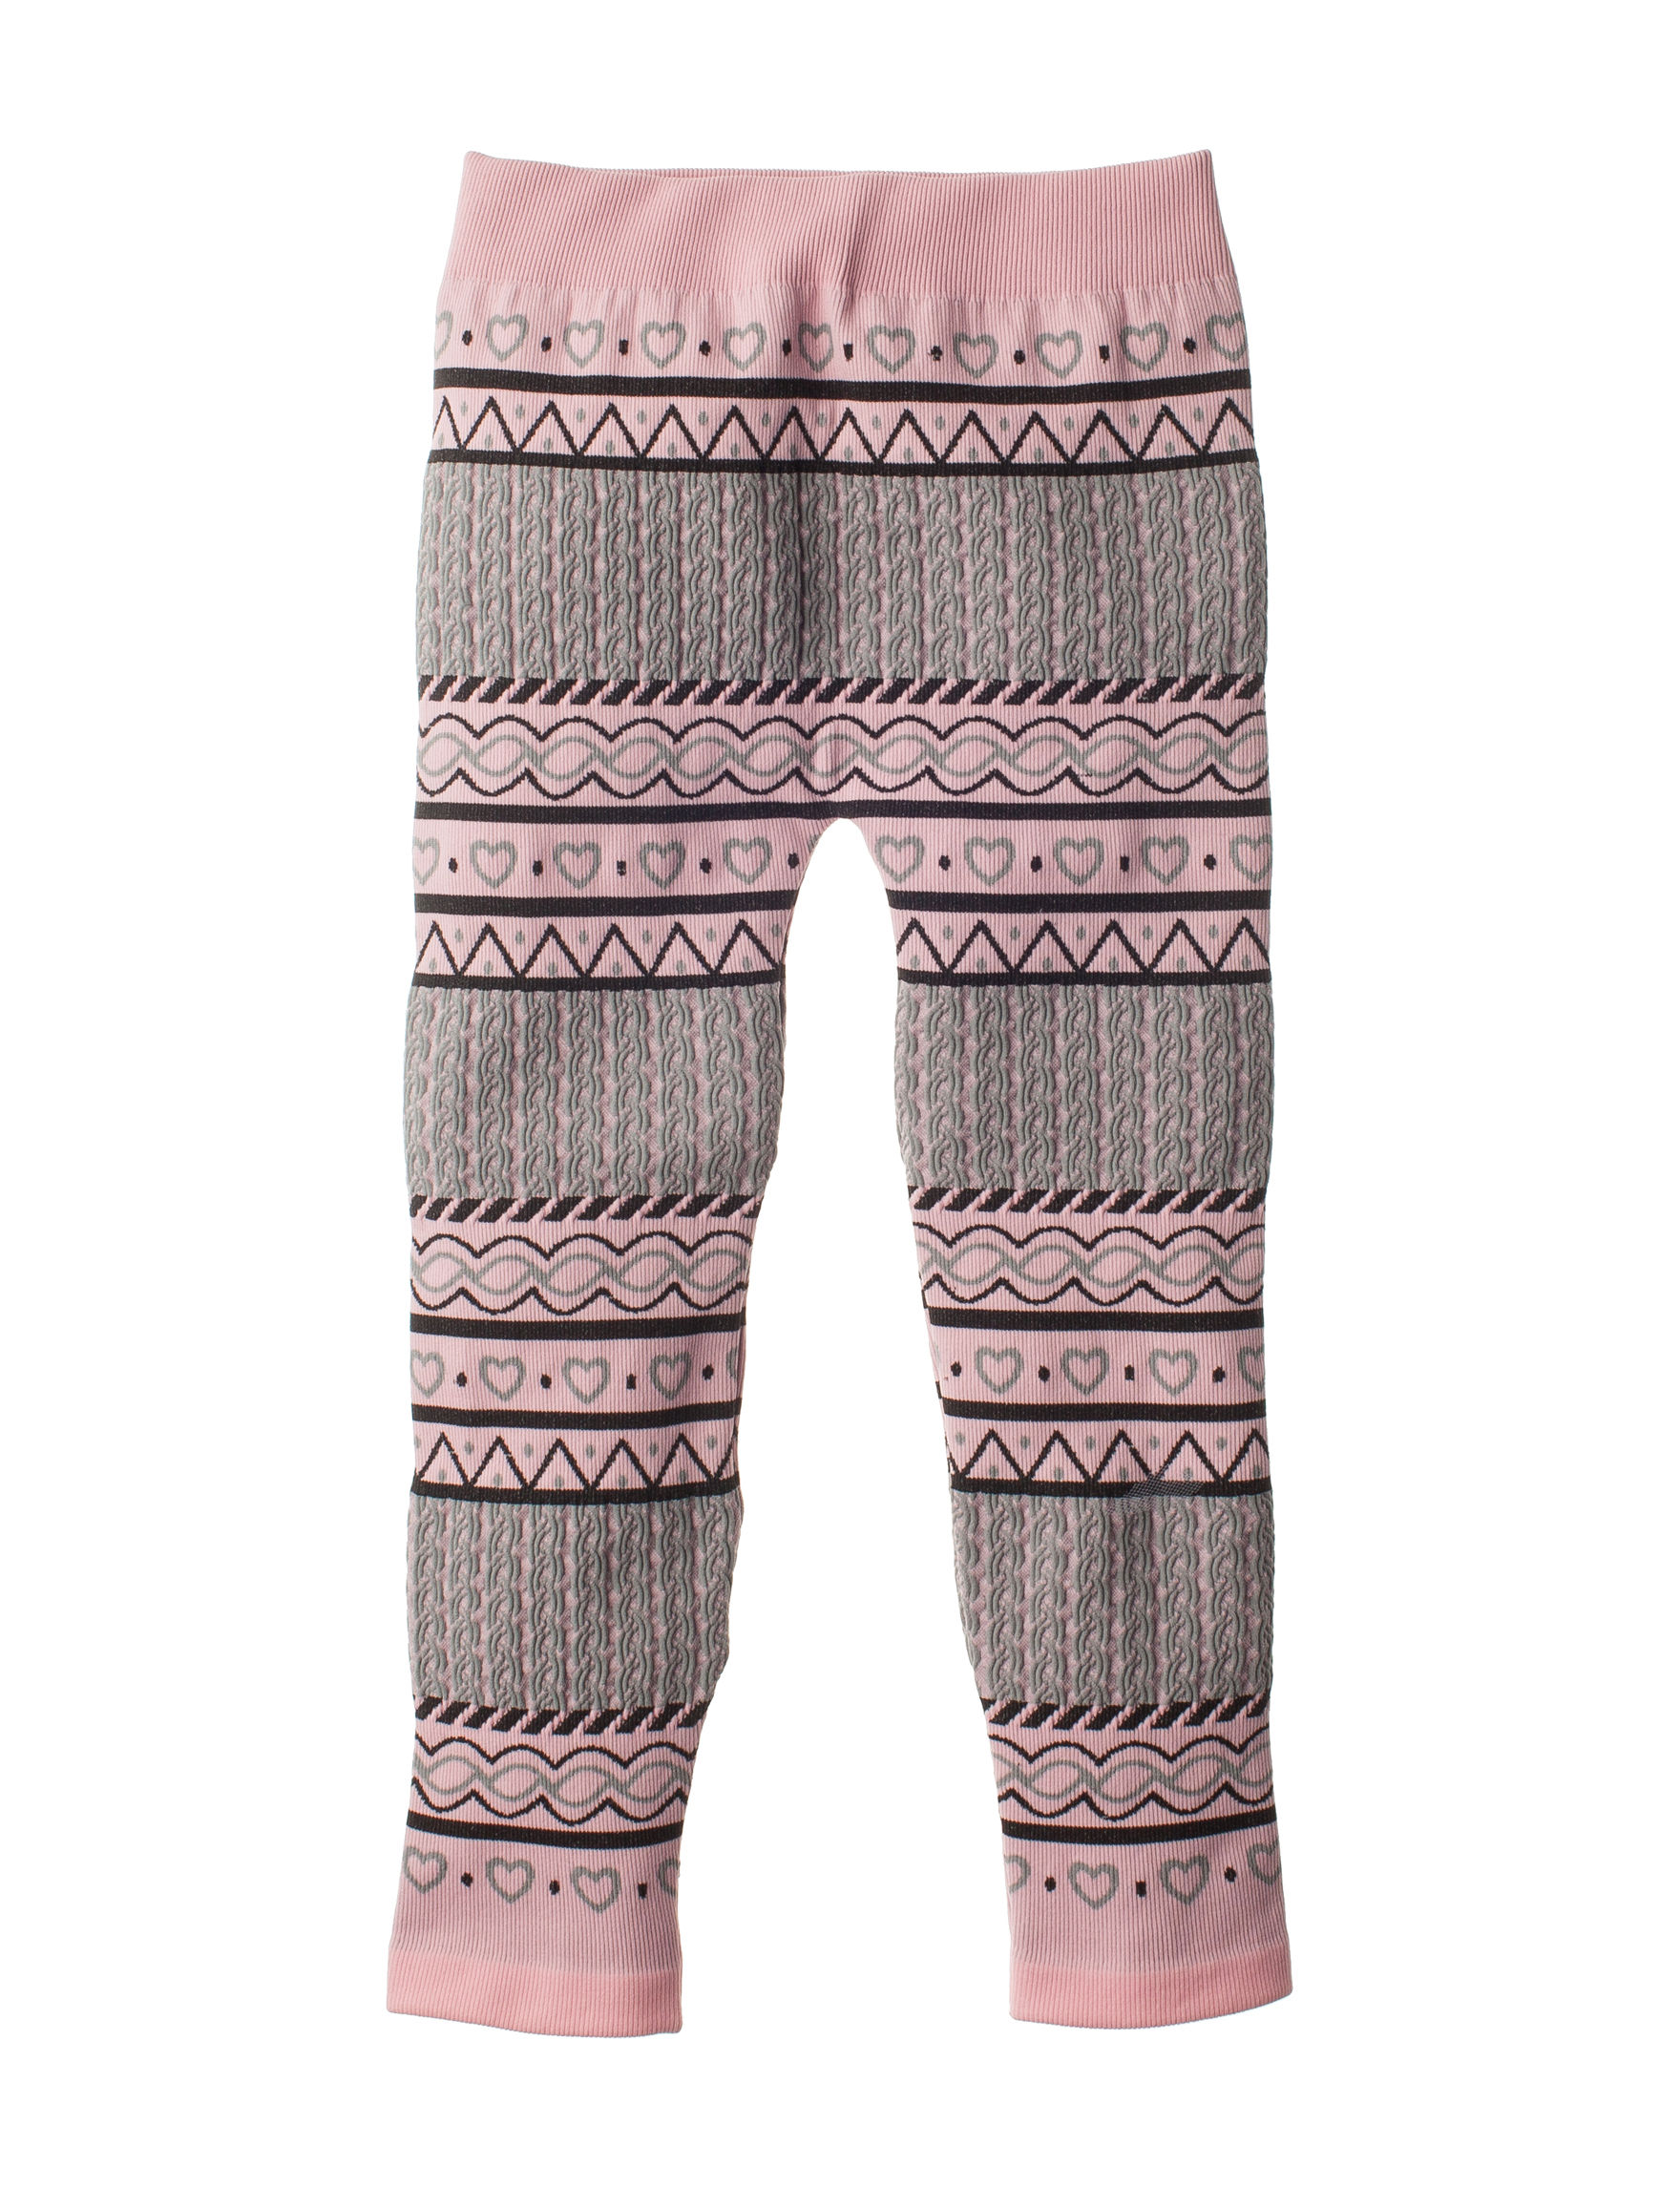 Wishful Park Pink / Grey Stretch